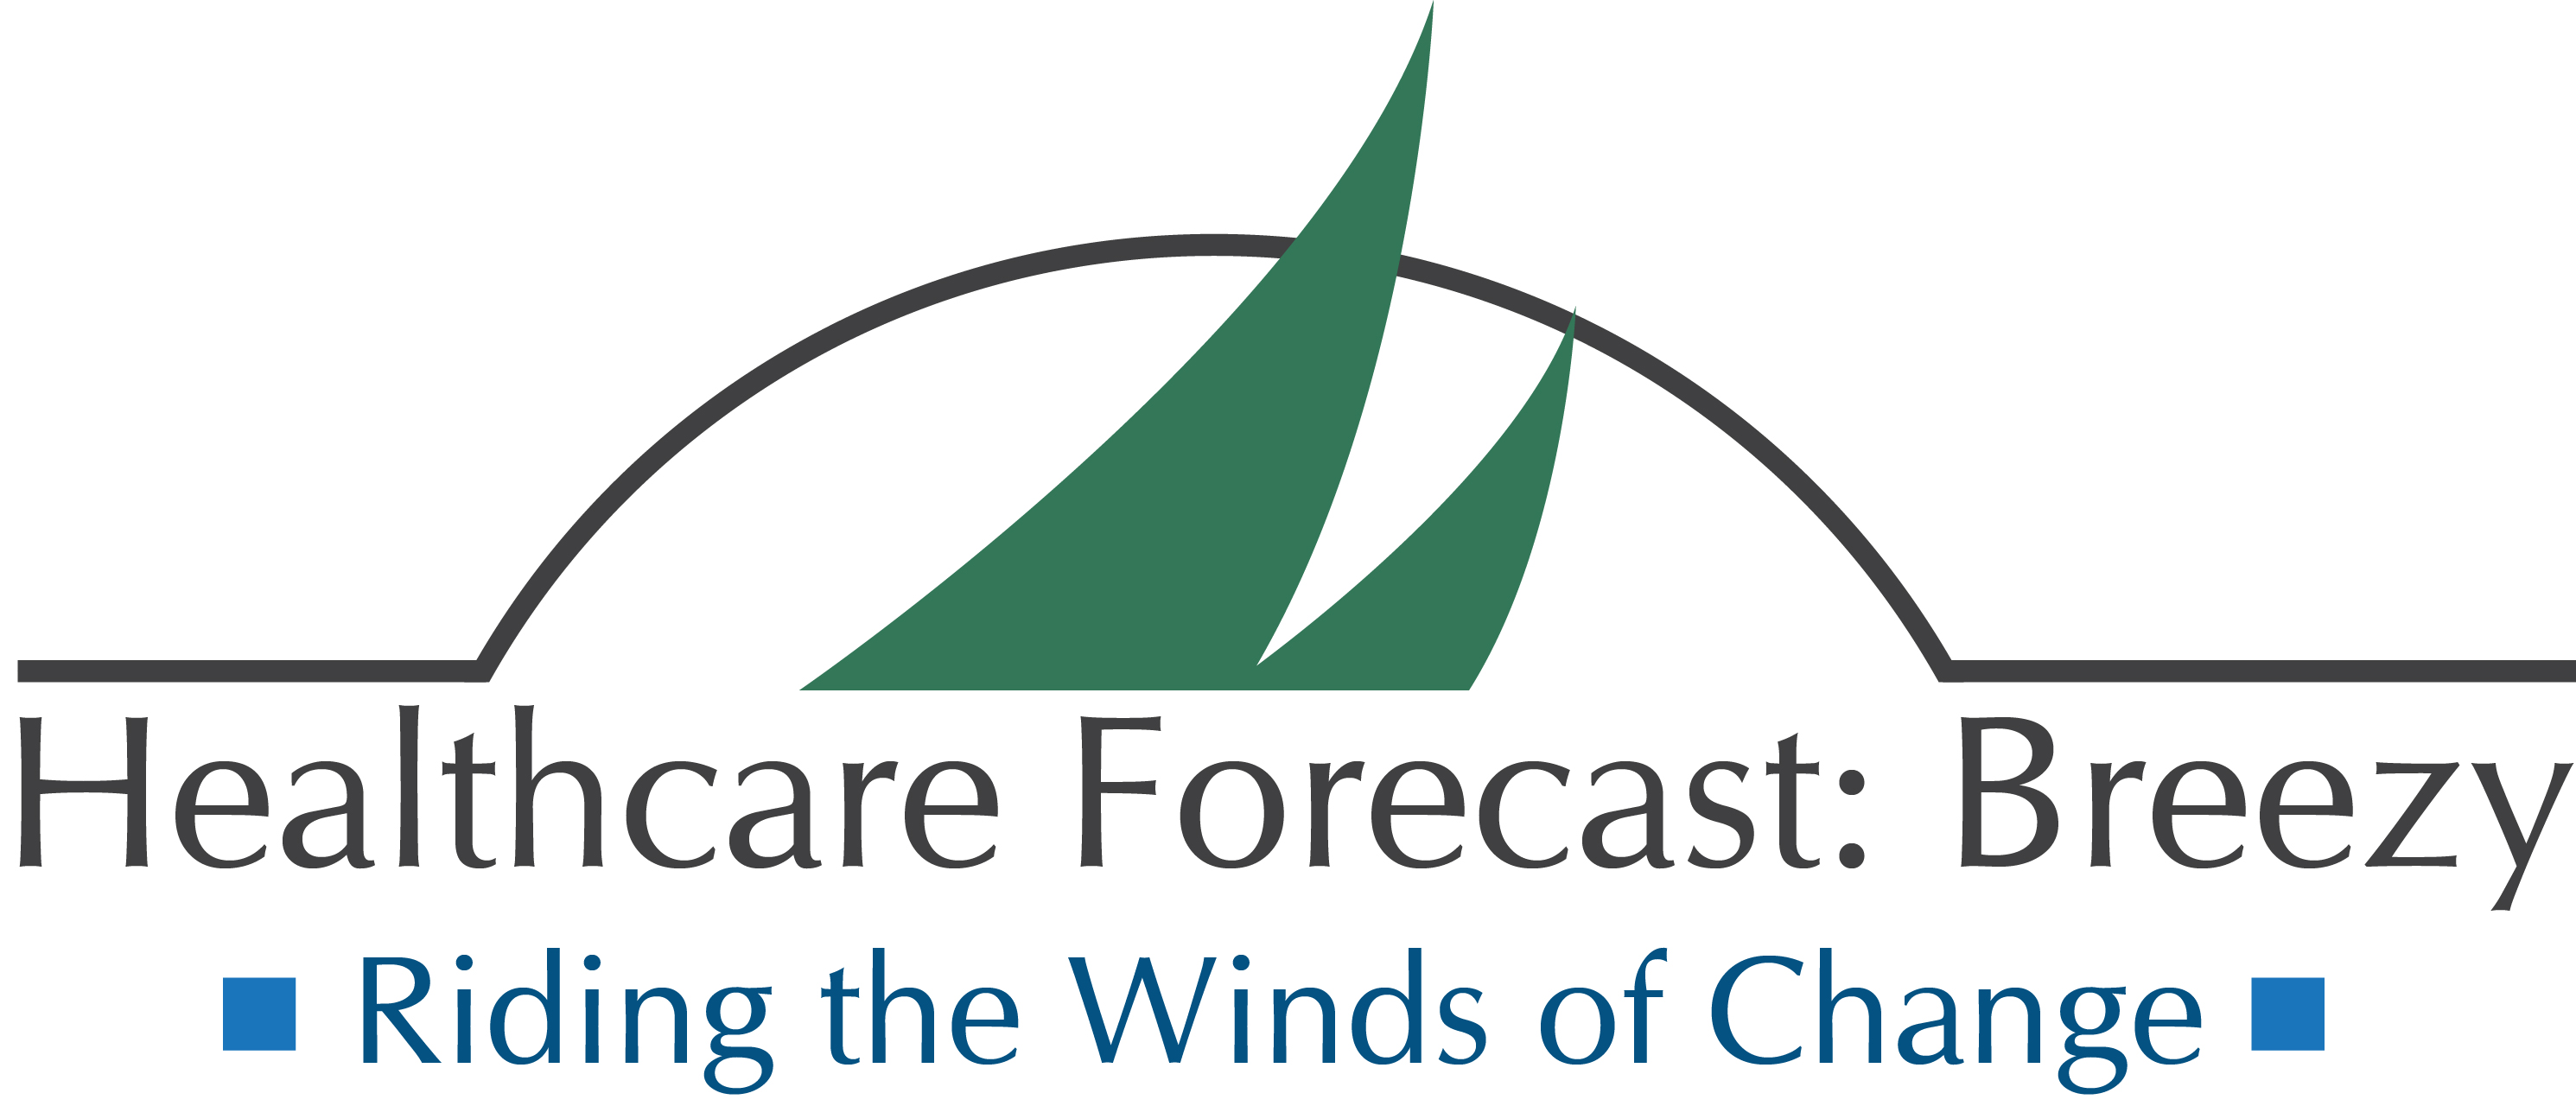 MMGMA 2015 Summer Conference | Healthcare Forecast: Breezy | Riding the Winds of Change